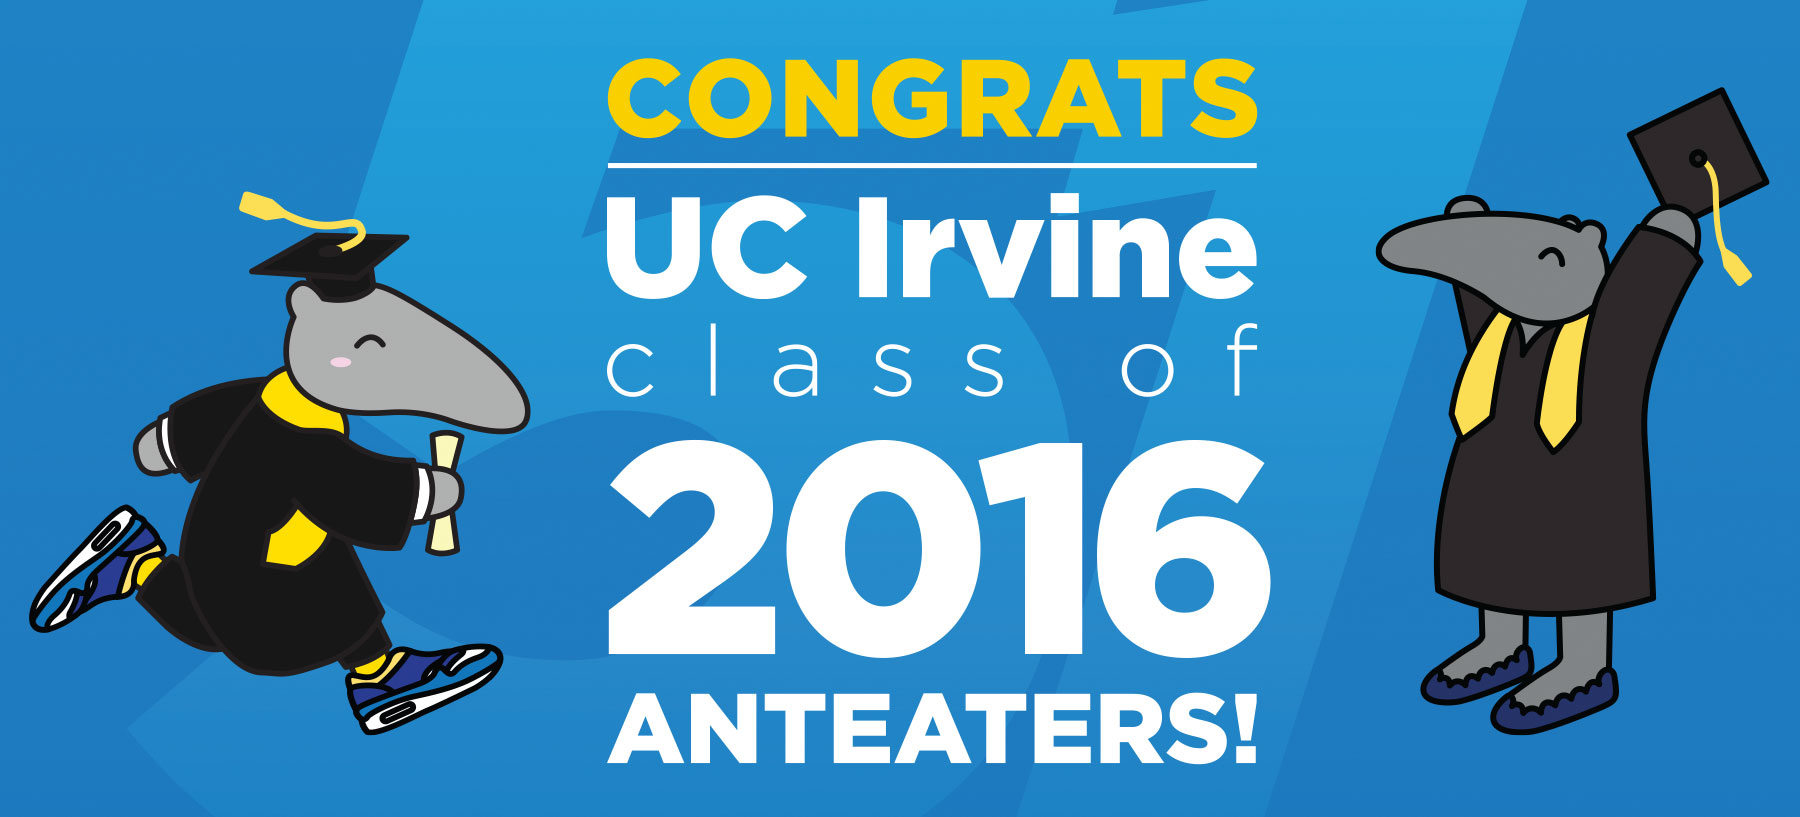 Congratulations, Class of 2016 Anteaters!